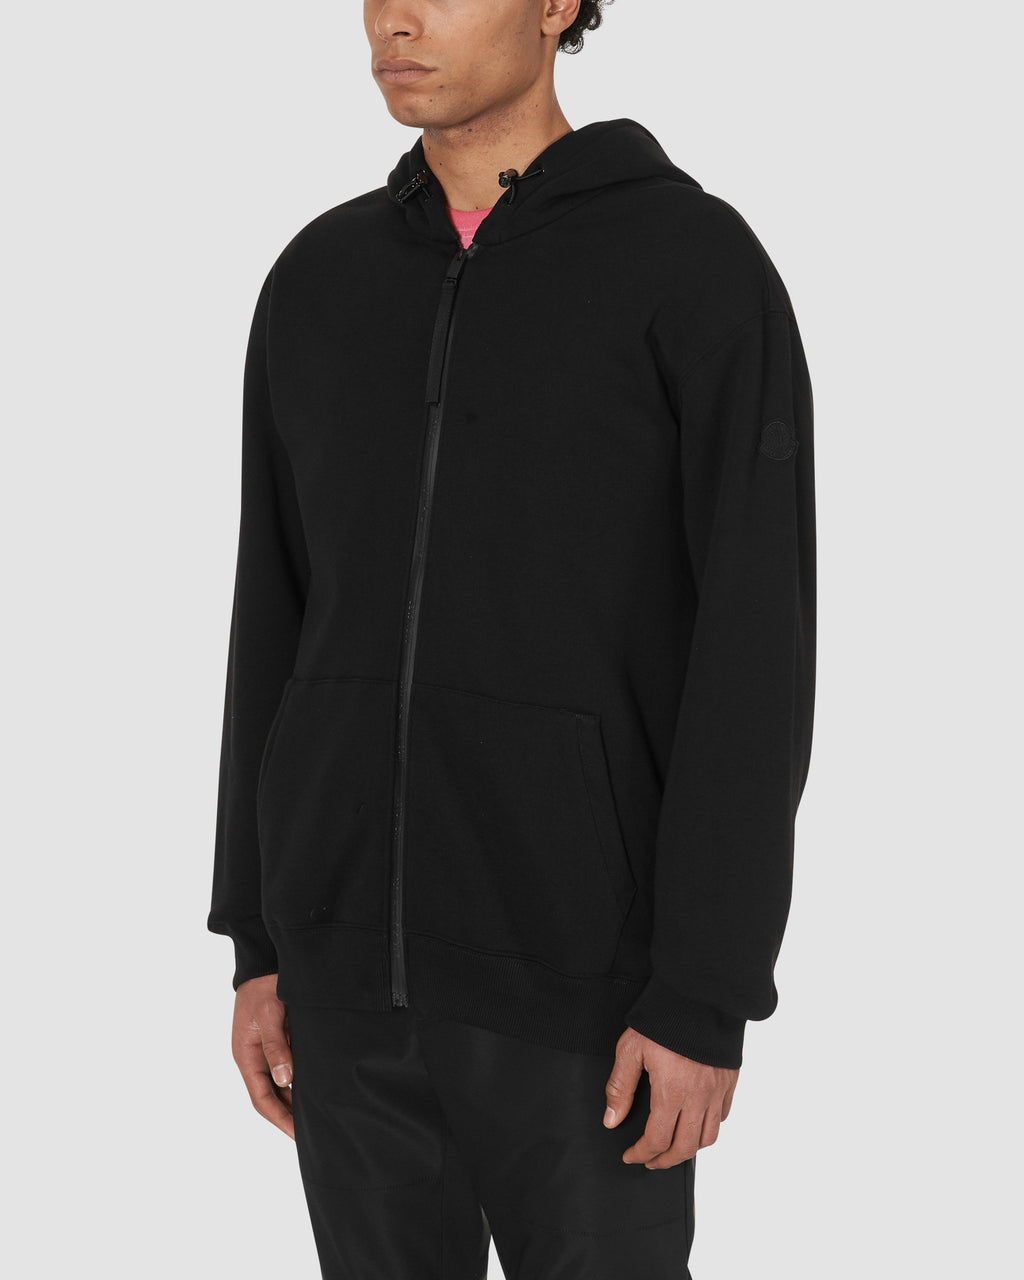 1017 ALYX 9SM | MONCLER HOODED JUMPER | Sweatshirt | BLACK, Google Shopping, Man, Moncler, S20, T-SHIRTS, UNISEX